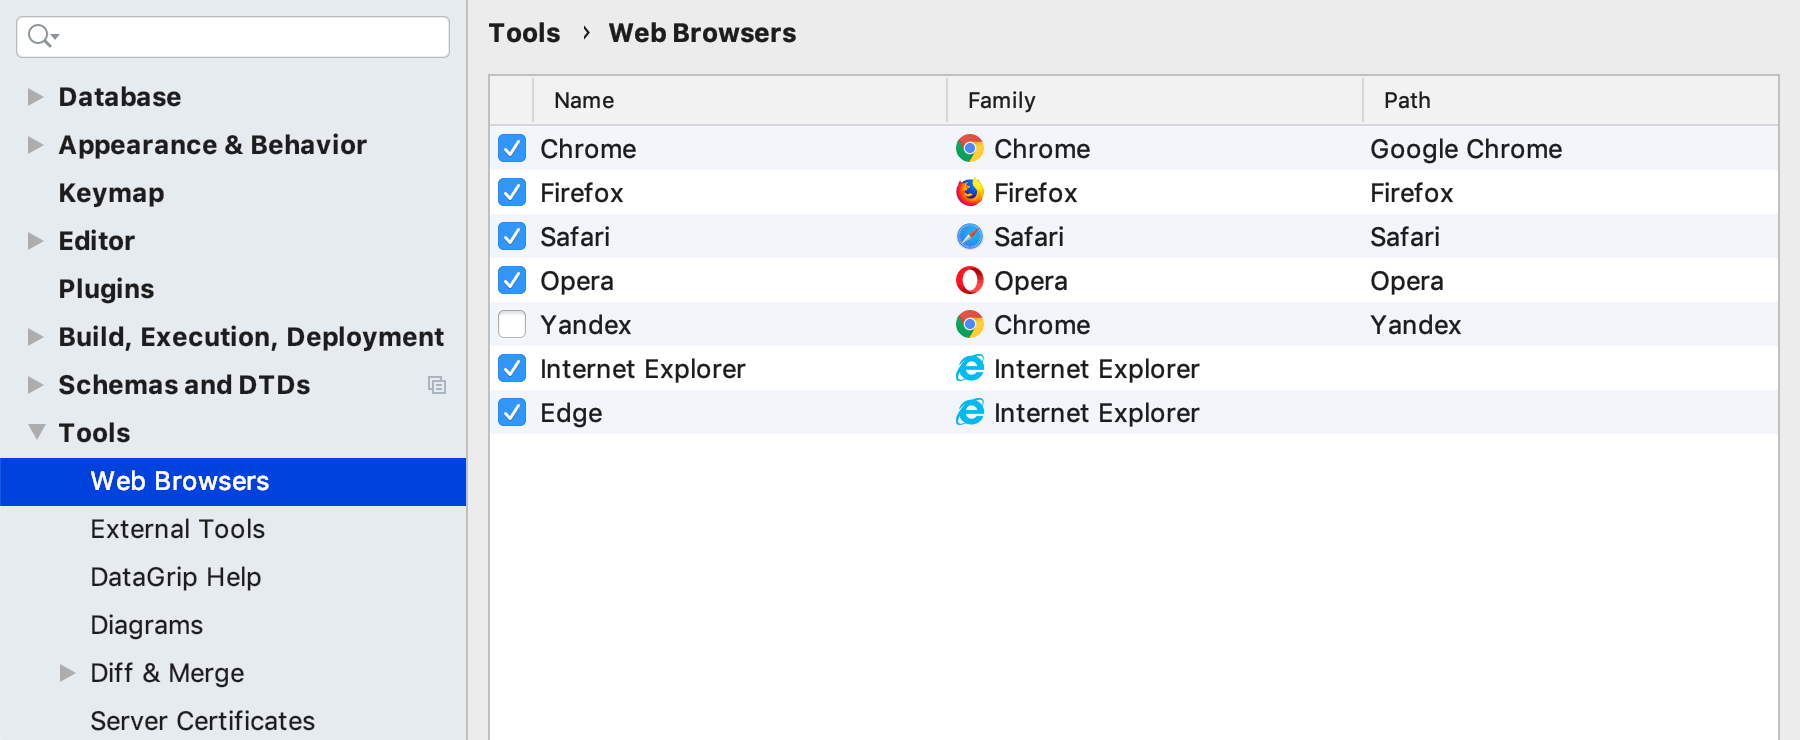 The Web Browsers page in Preferences